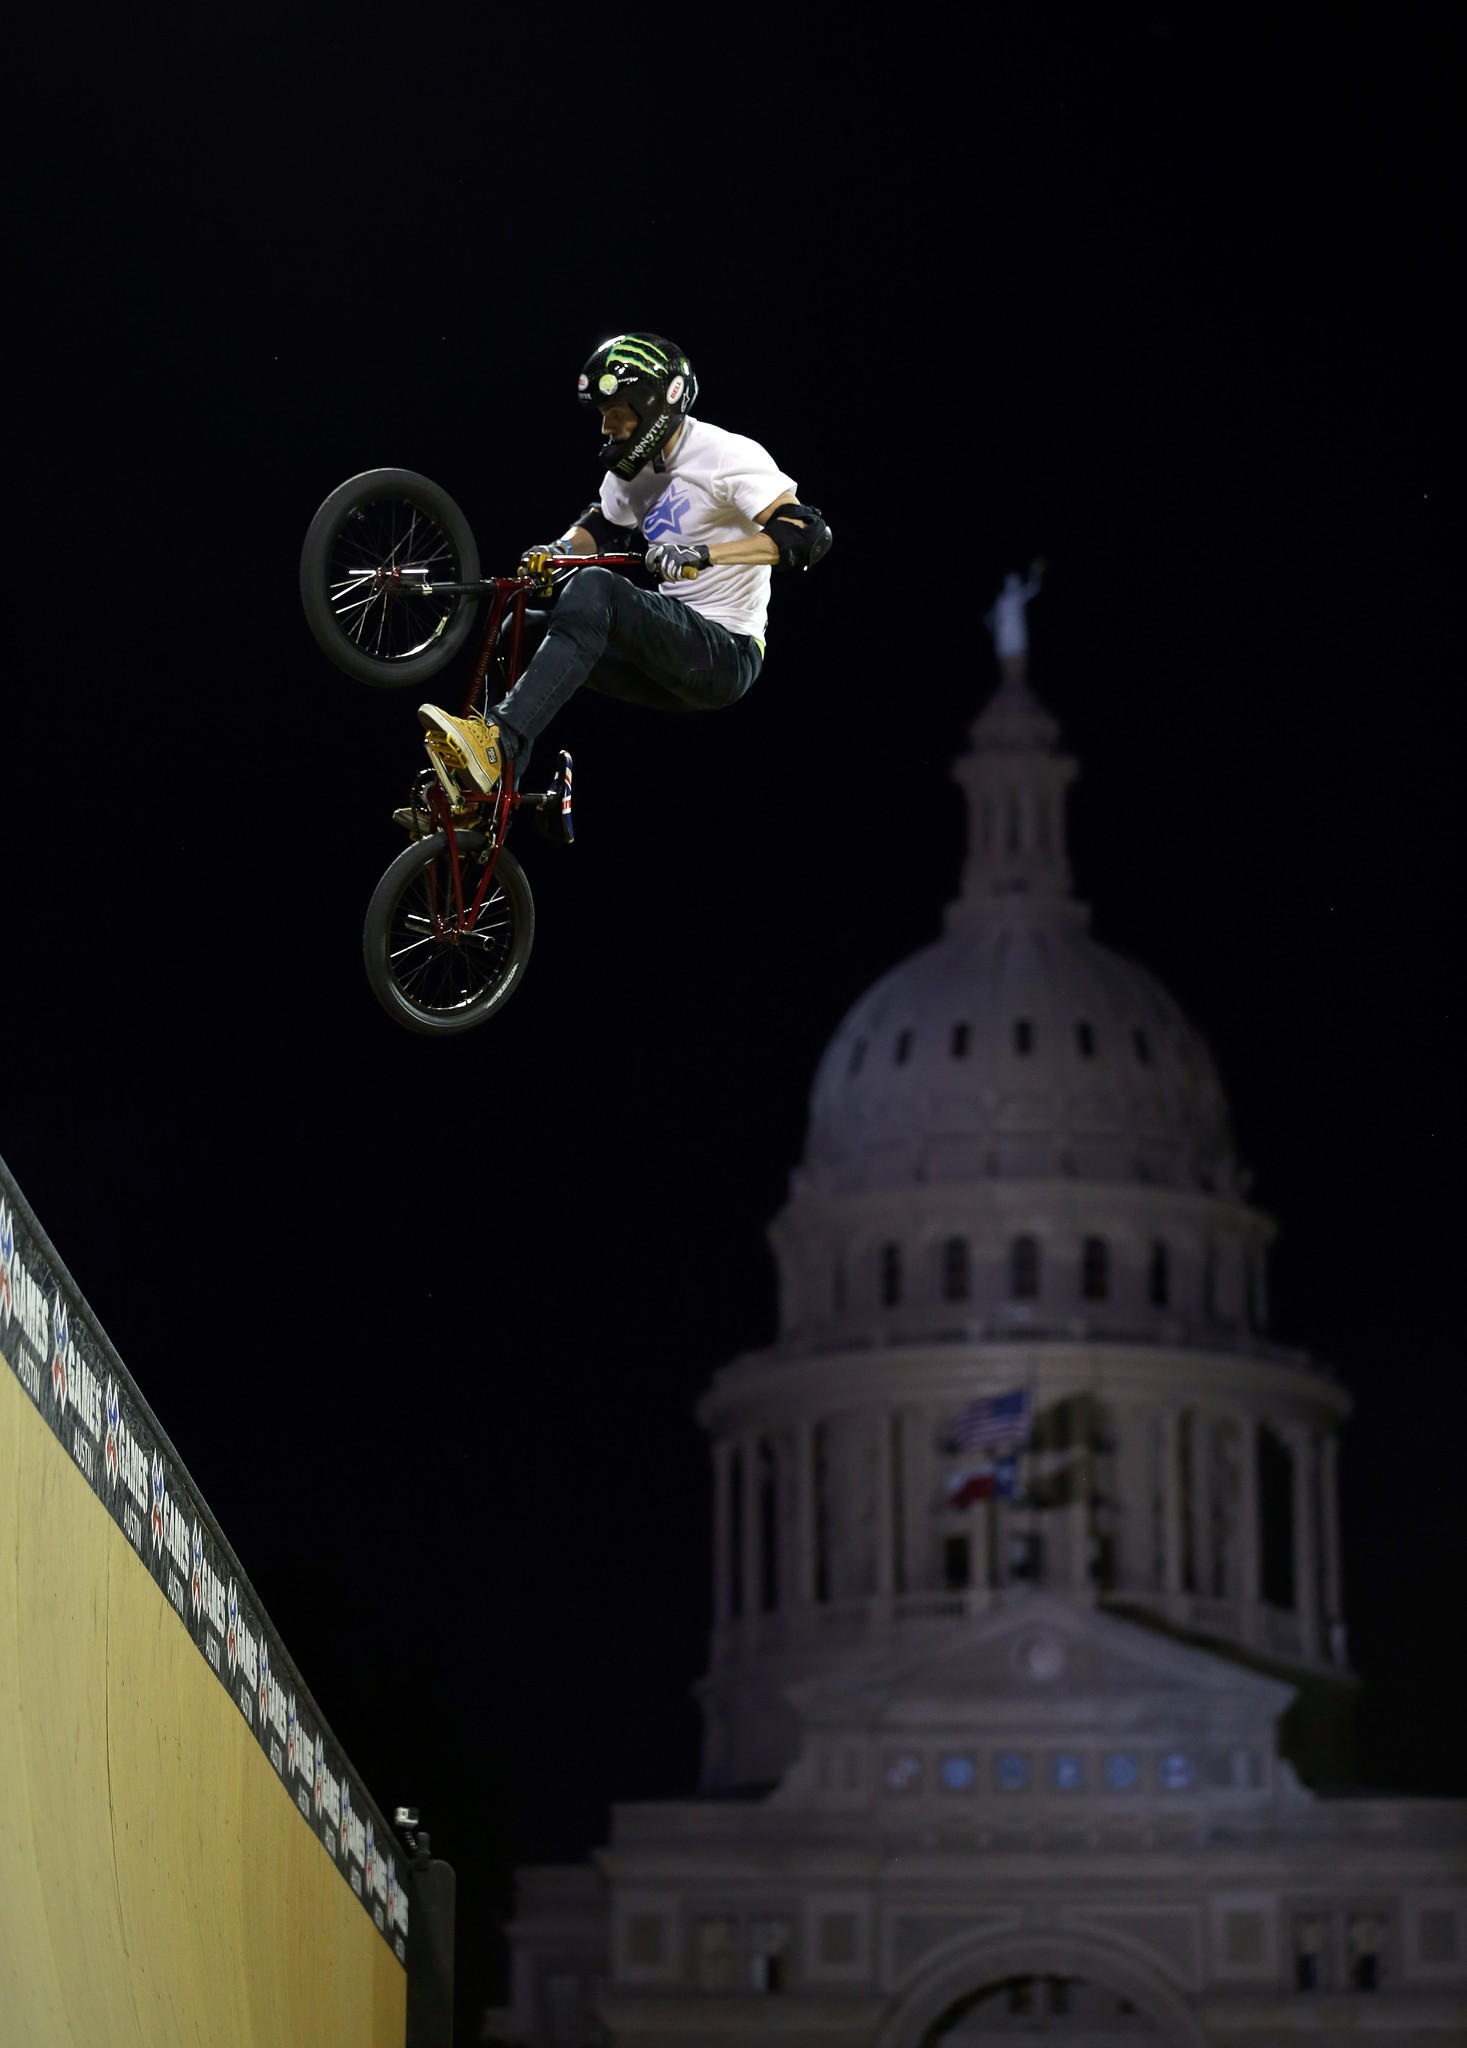 Jamie Bestwick of Great Britain competes in the BMX Vert finals at the X Games Austin on June 5 in Austin, Texas. Bestwick went on to win the competition.